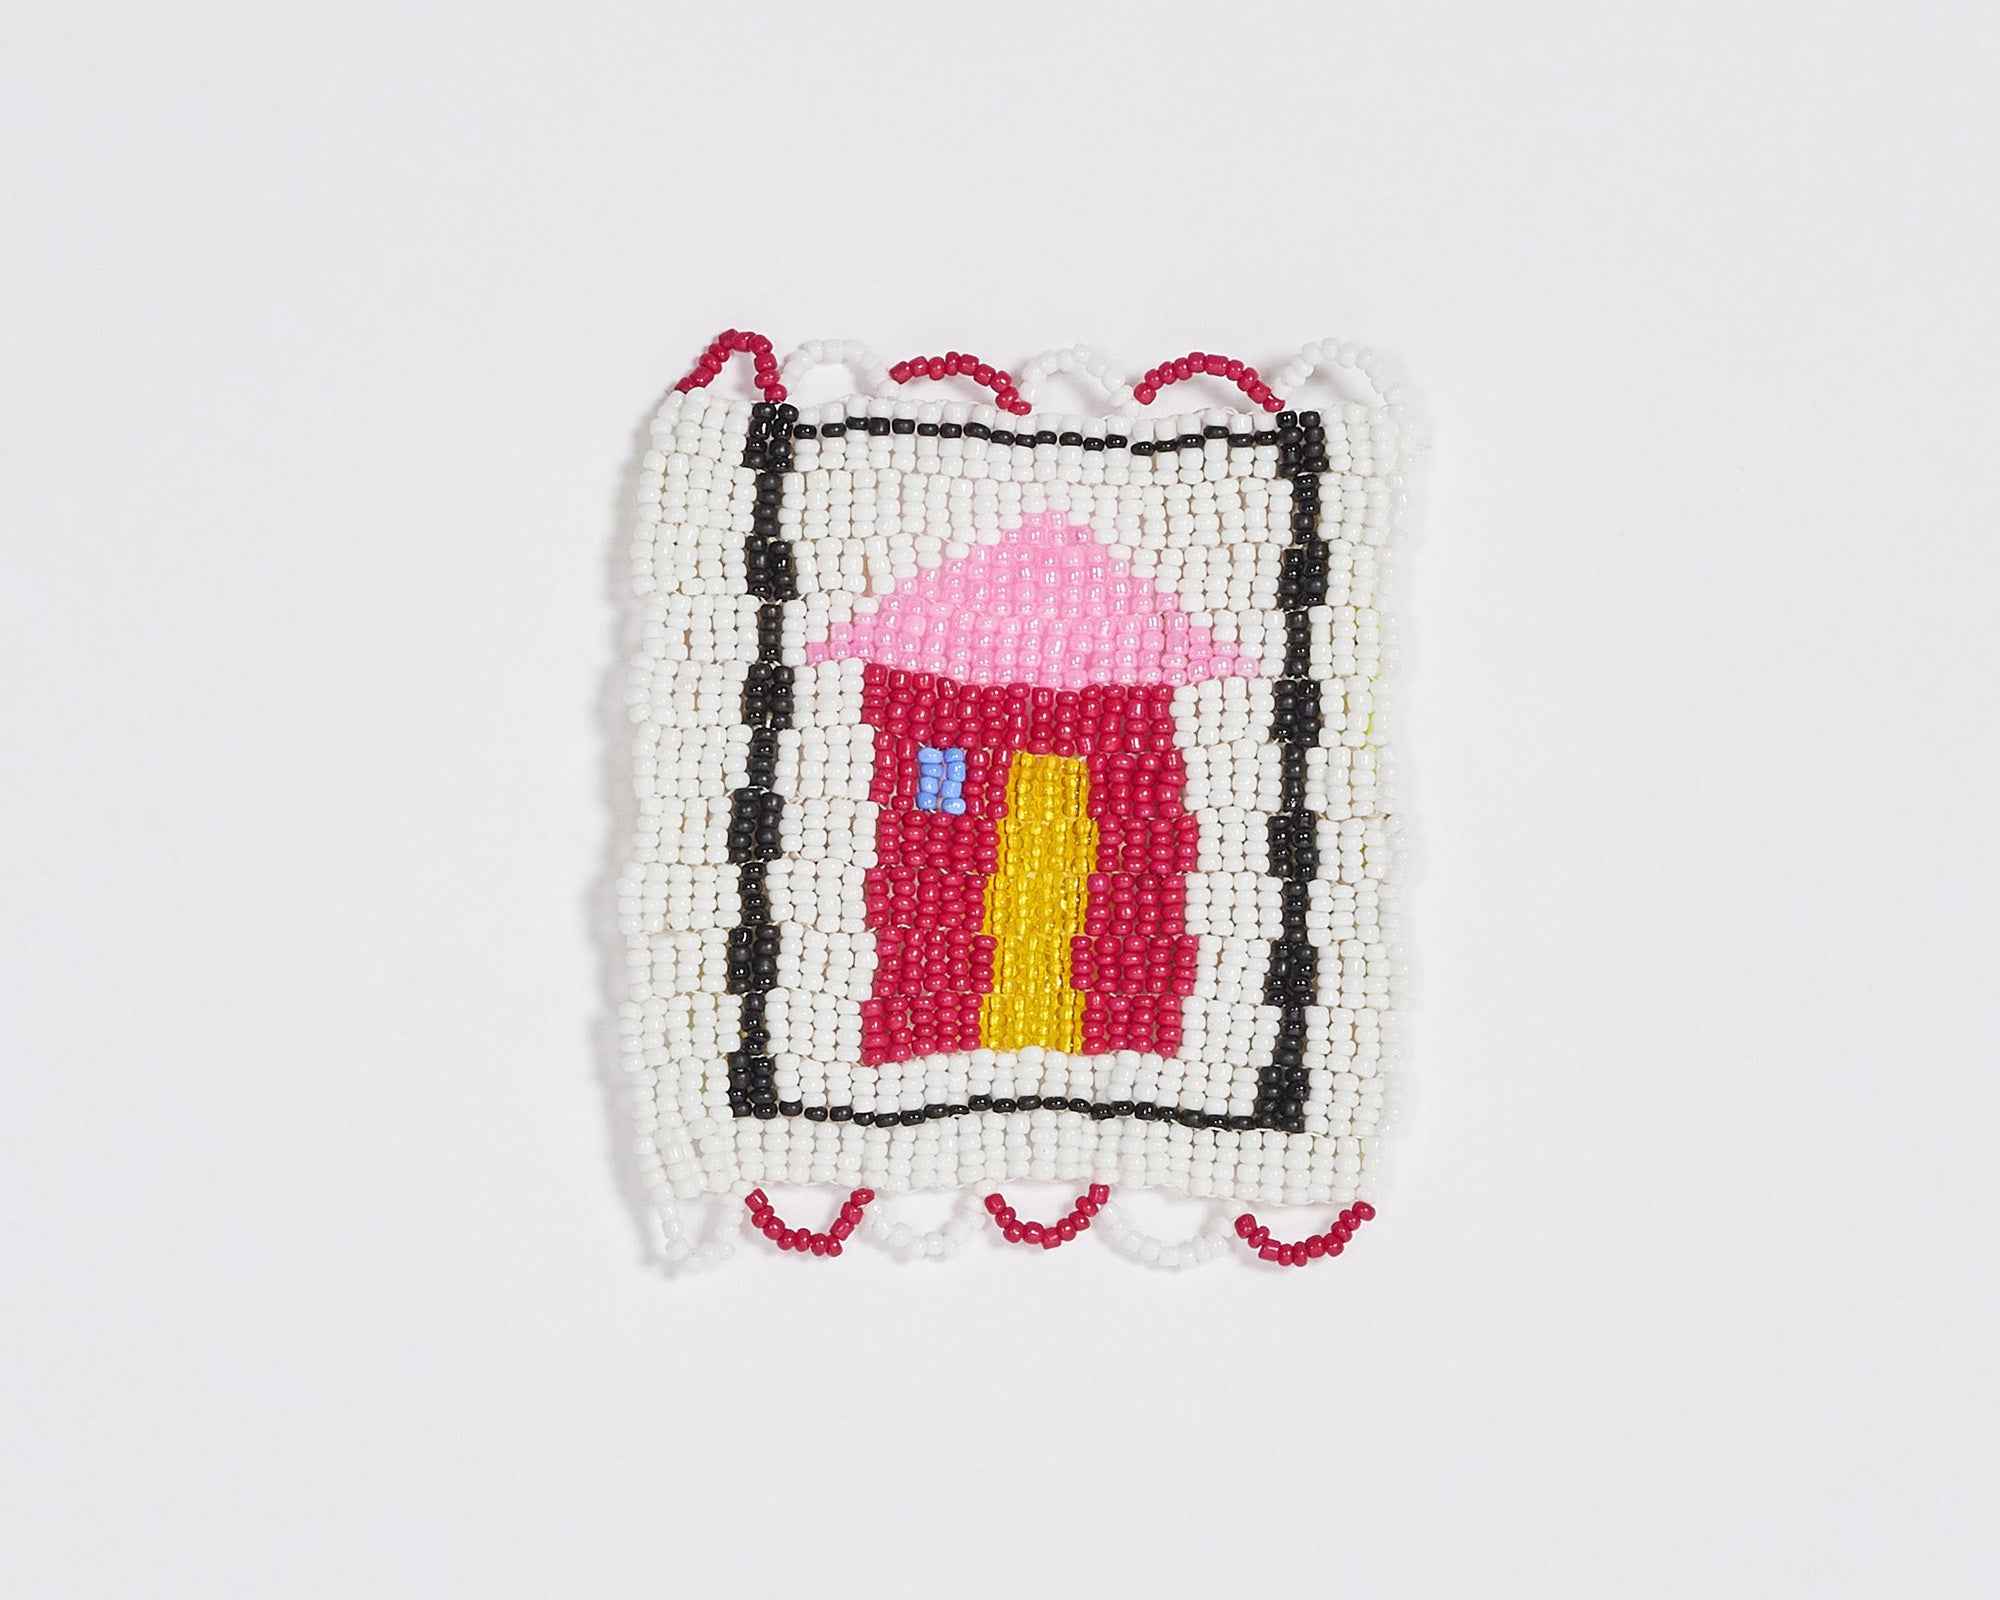 Beaded 'House' Coaster 011